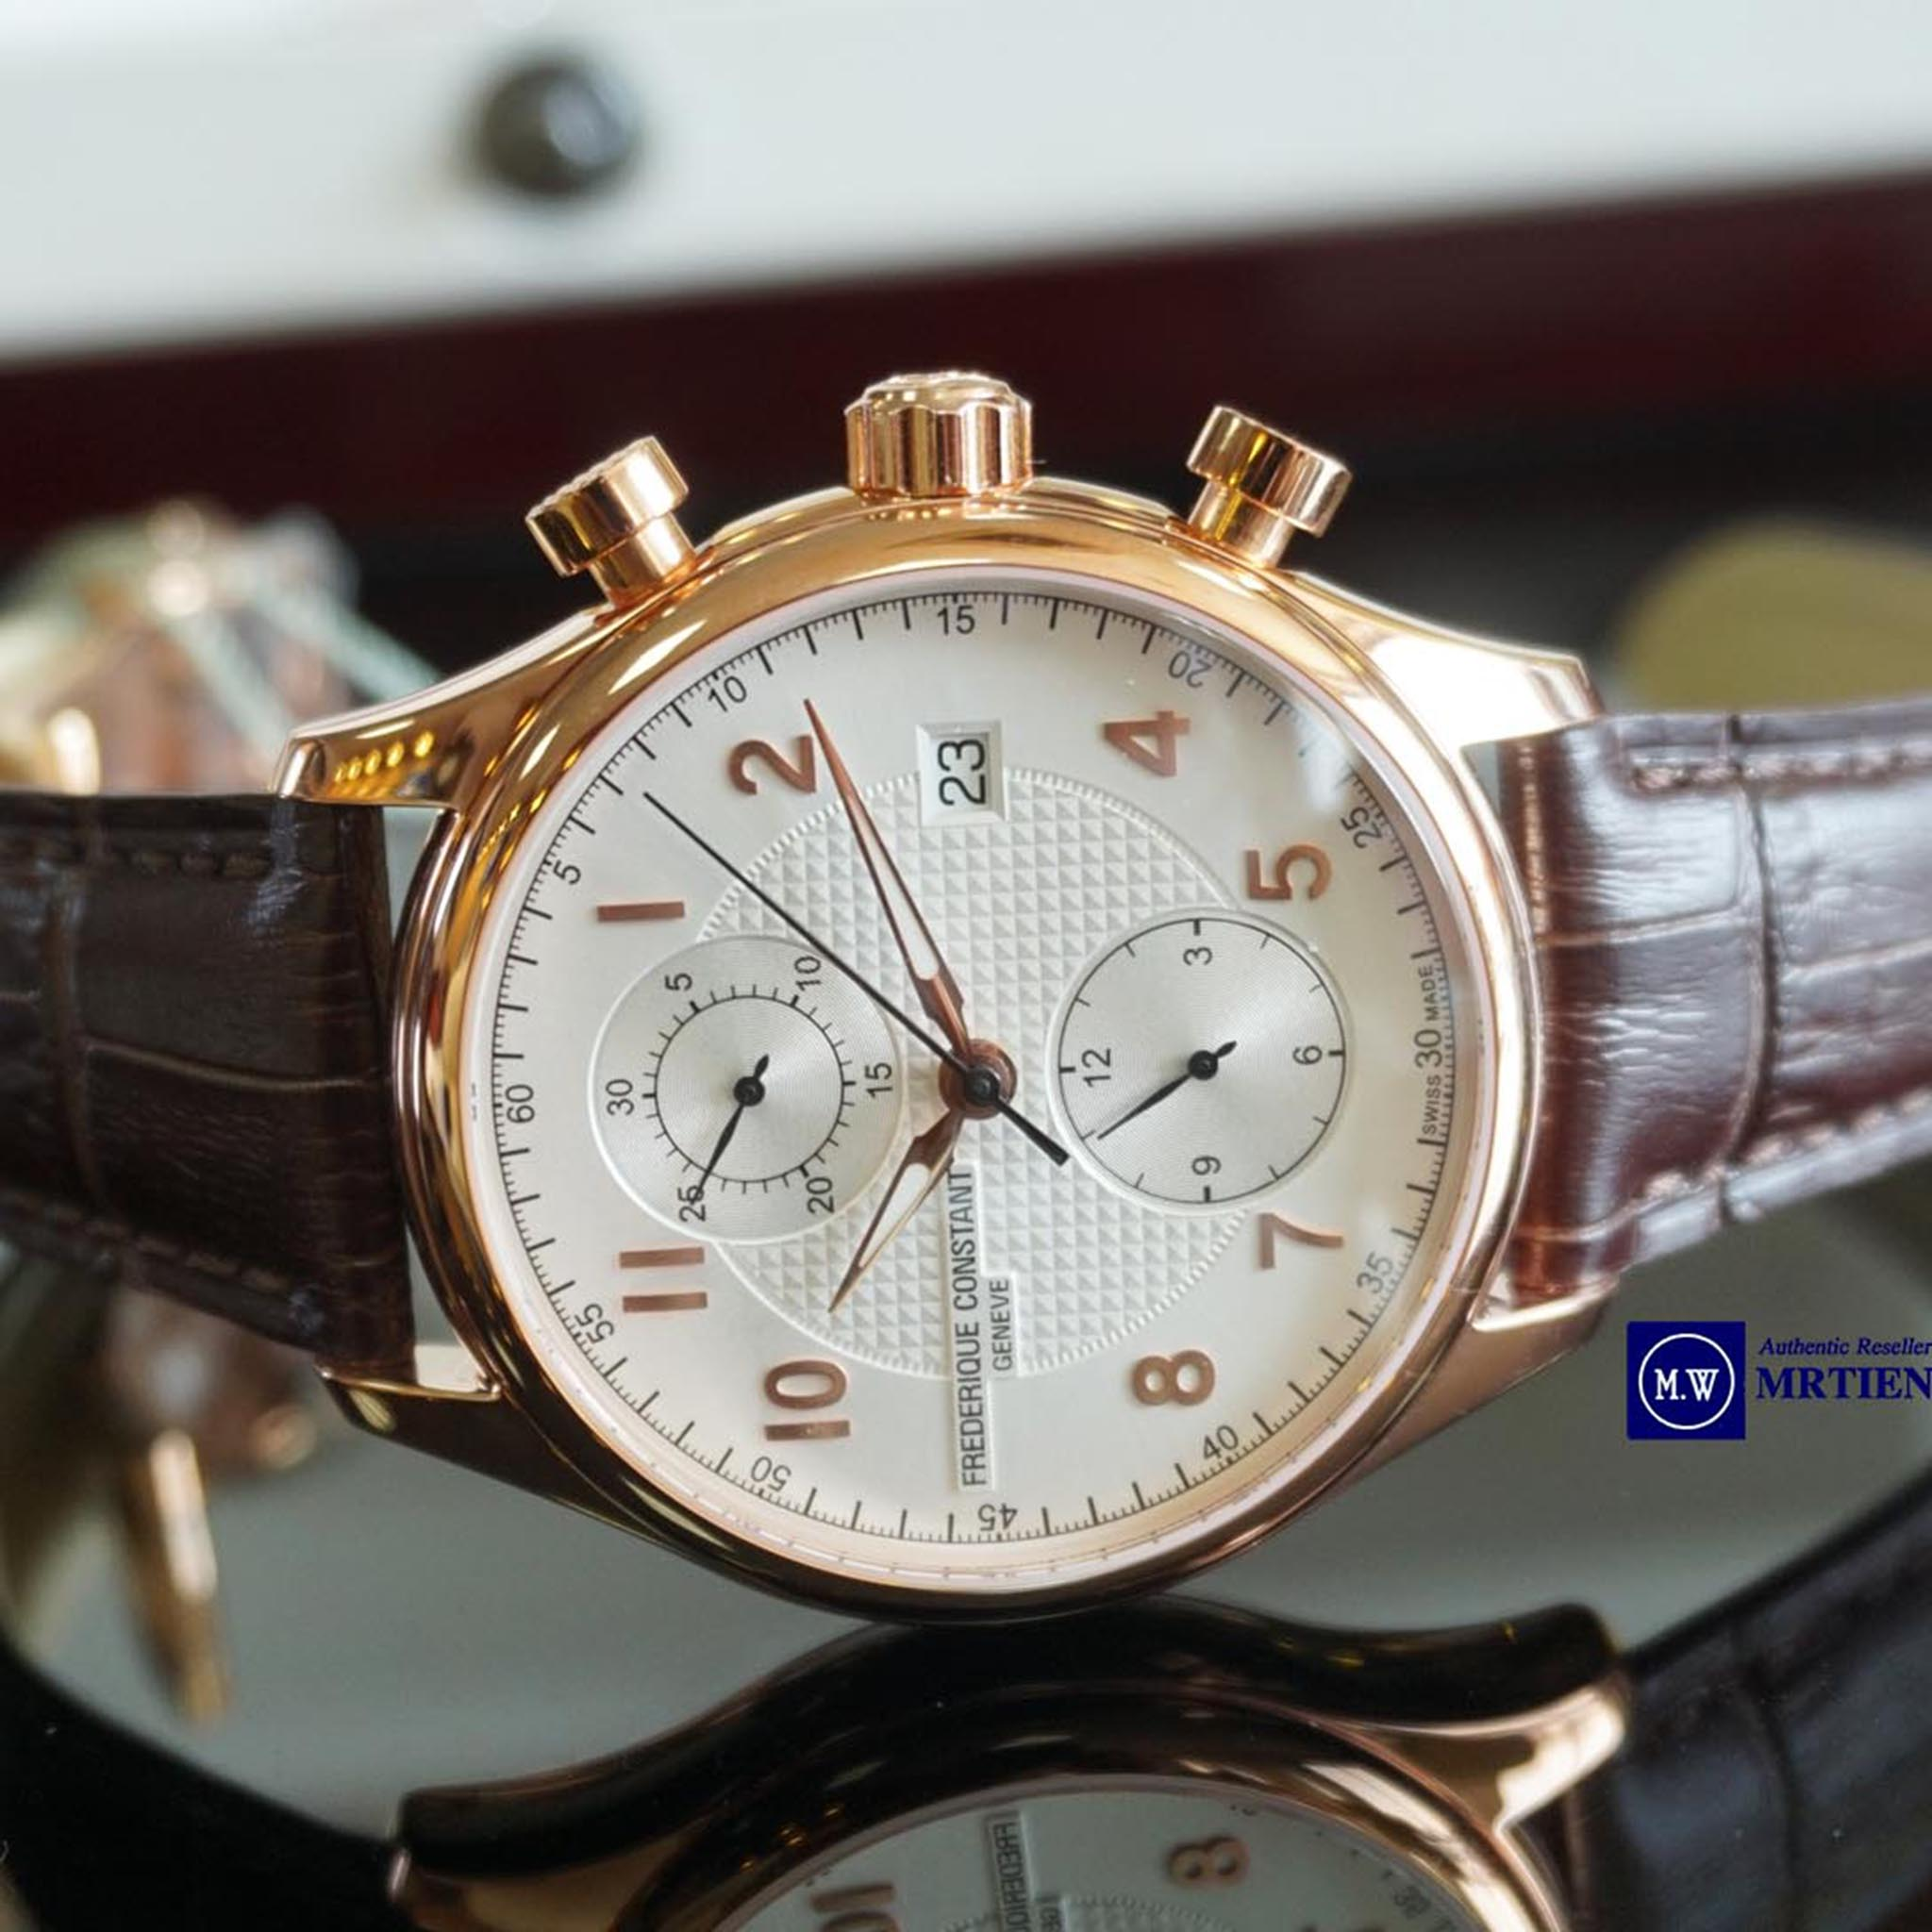 FREDERIQUE CONSTANT RUNABOUT CHRONOGRAPH AUTOMATIC LIMITED 18K GOLD PVD LEATHER STRAPS FC-393RM5B4  - Thép không rỉ mạ vàng 18k PVD